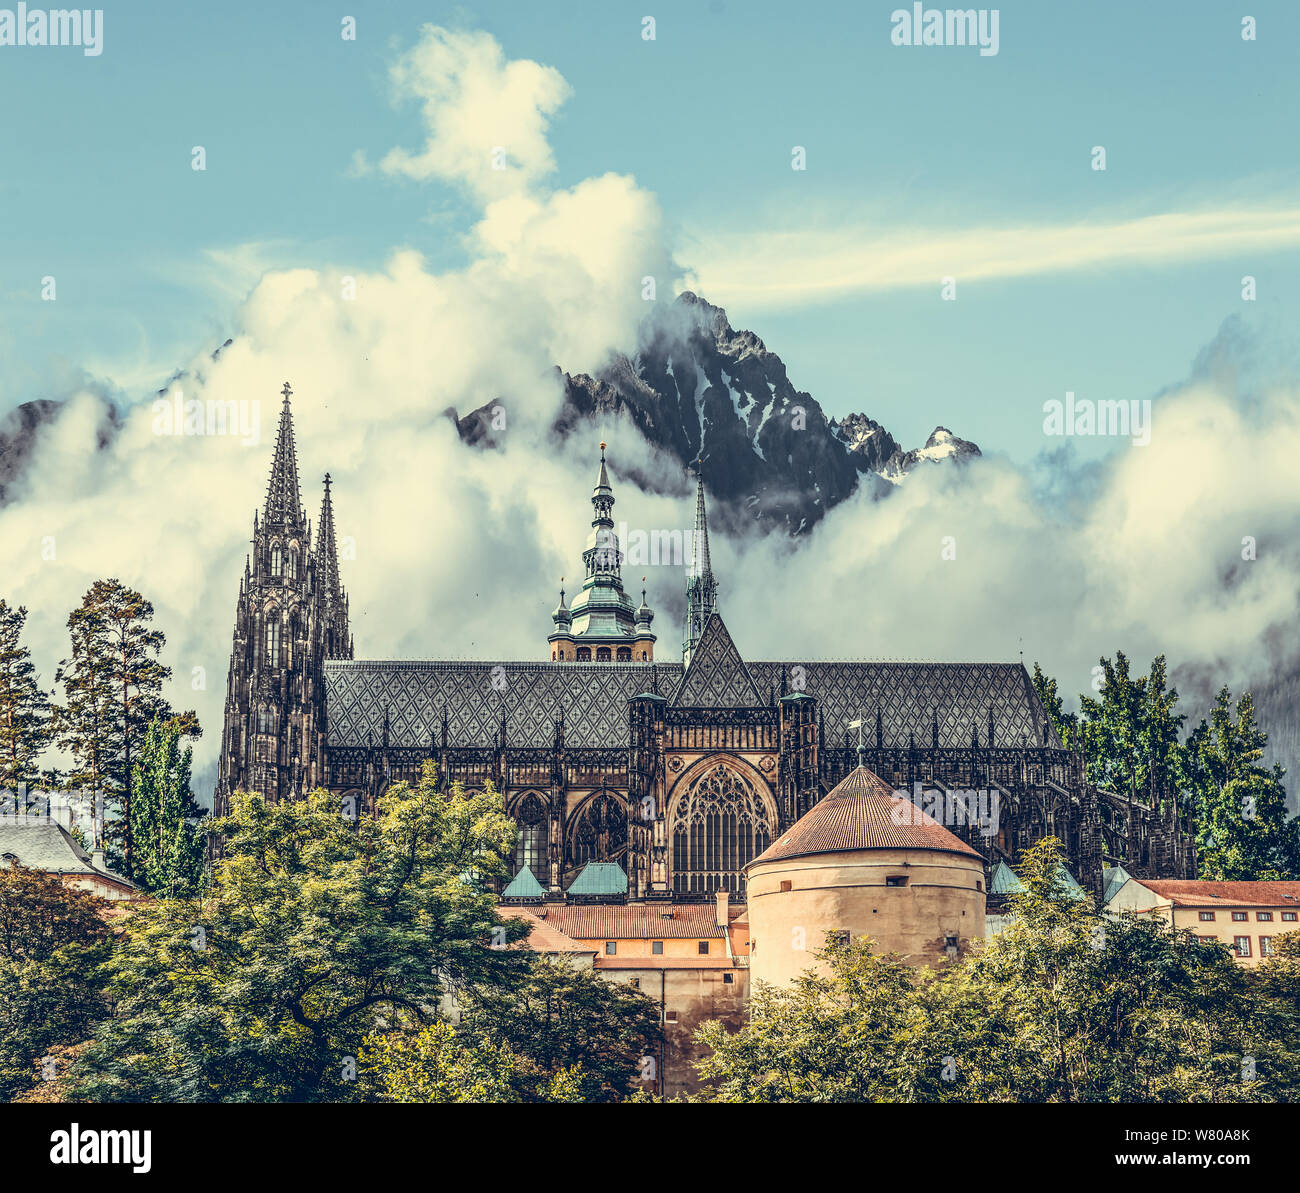 Castle on a background of rocky mountains. Stock Photo